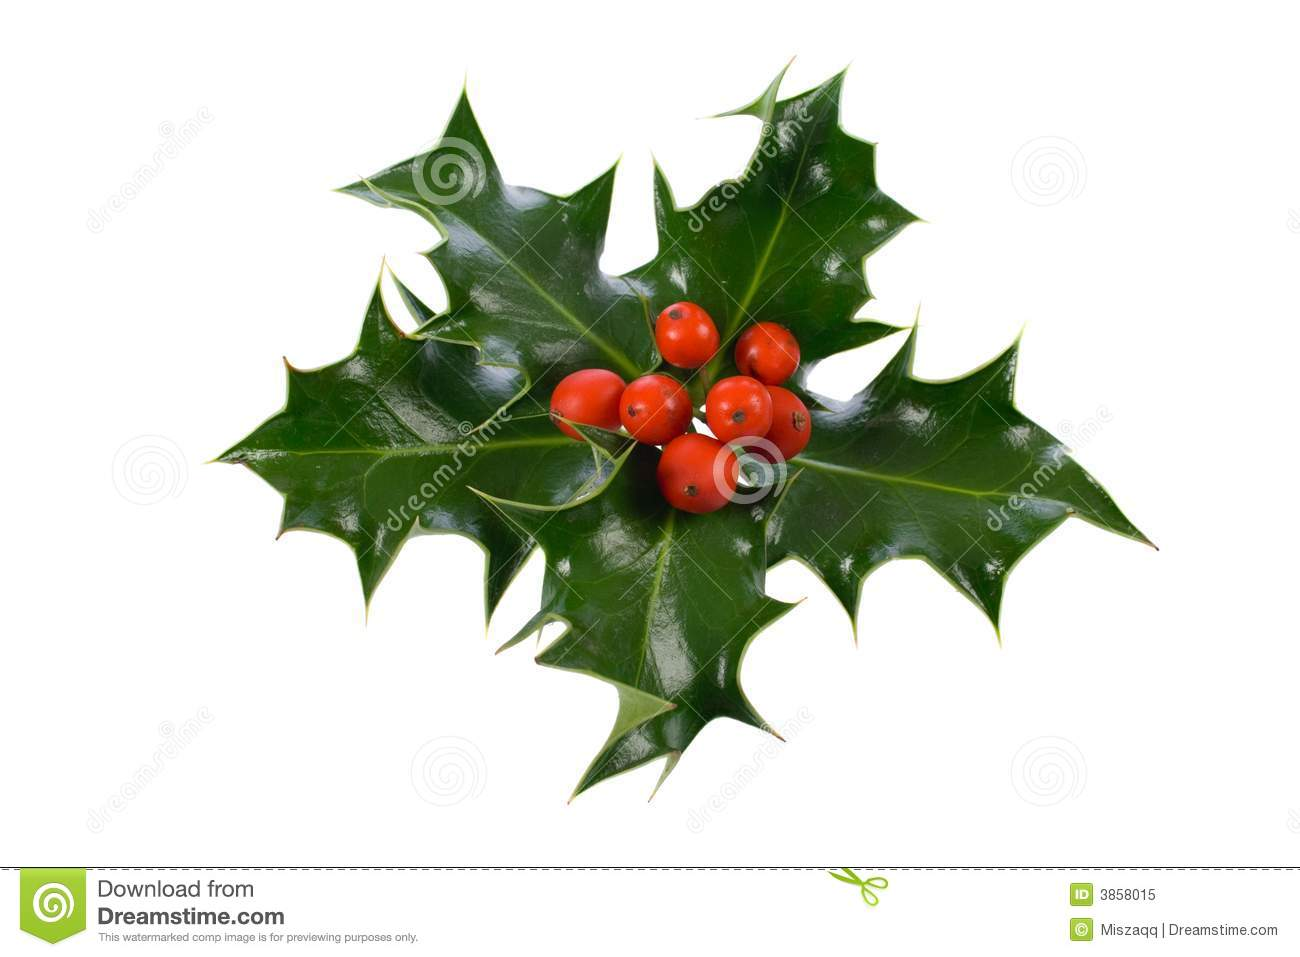 Ilex houx d coration de no l photo libre de droits for Photo de decoration de noel